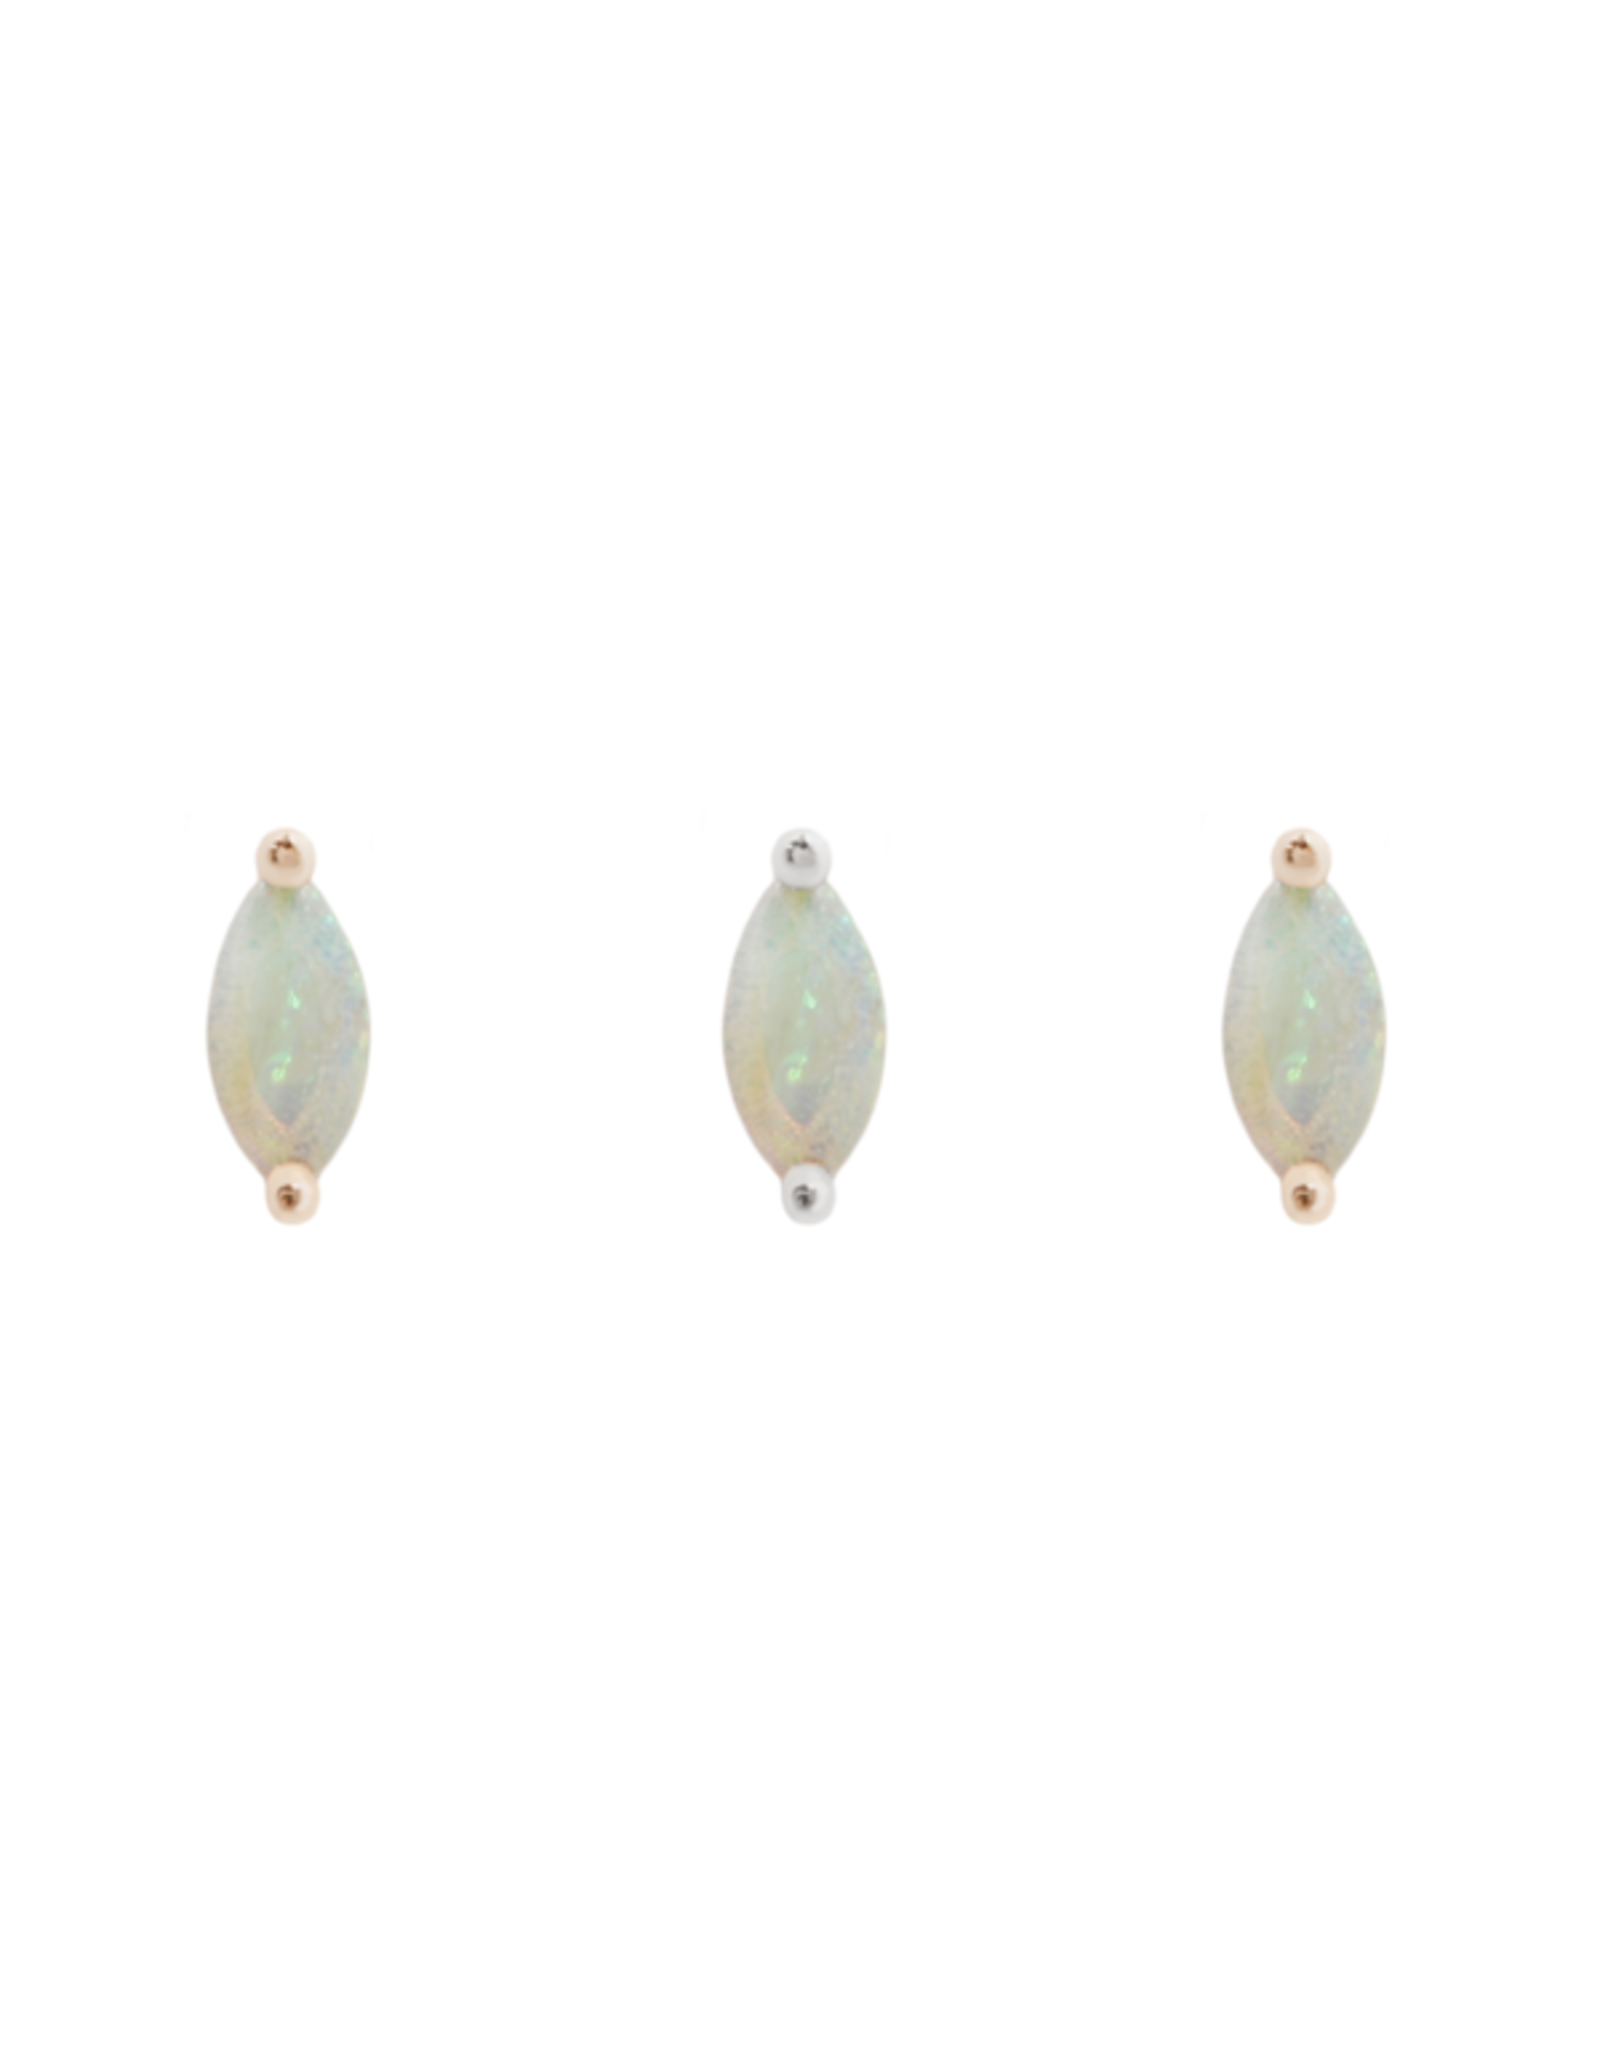 """Buddha Jewelry Organics Buddha Jewelry Organics """"Zuri"""" press fit end with Marquise White Opal"""